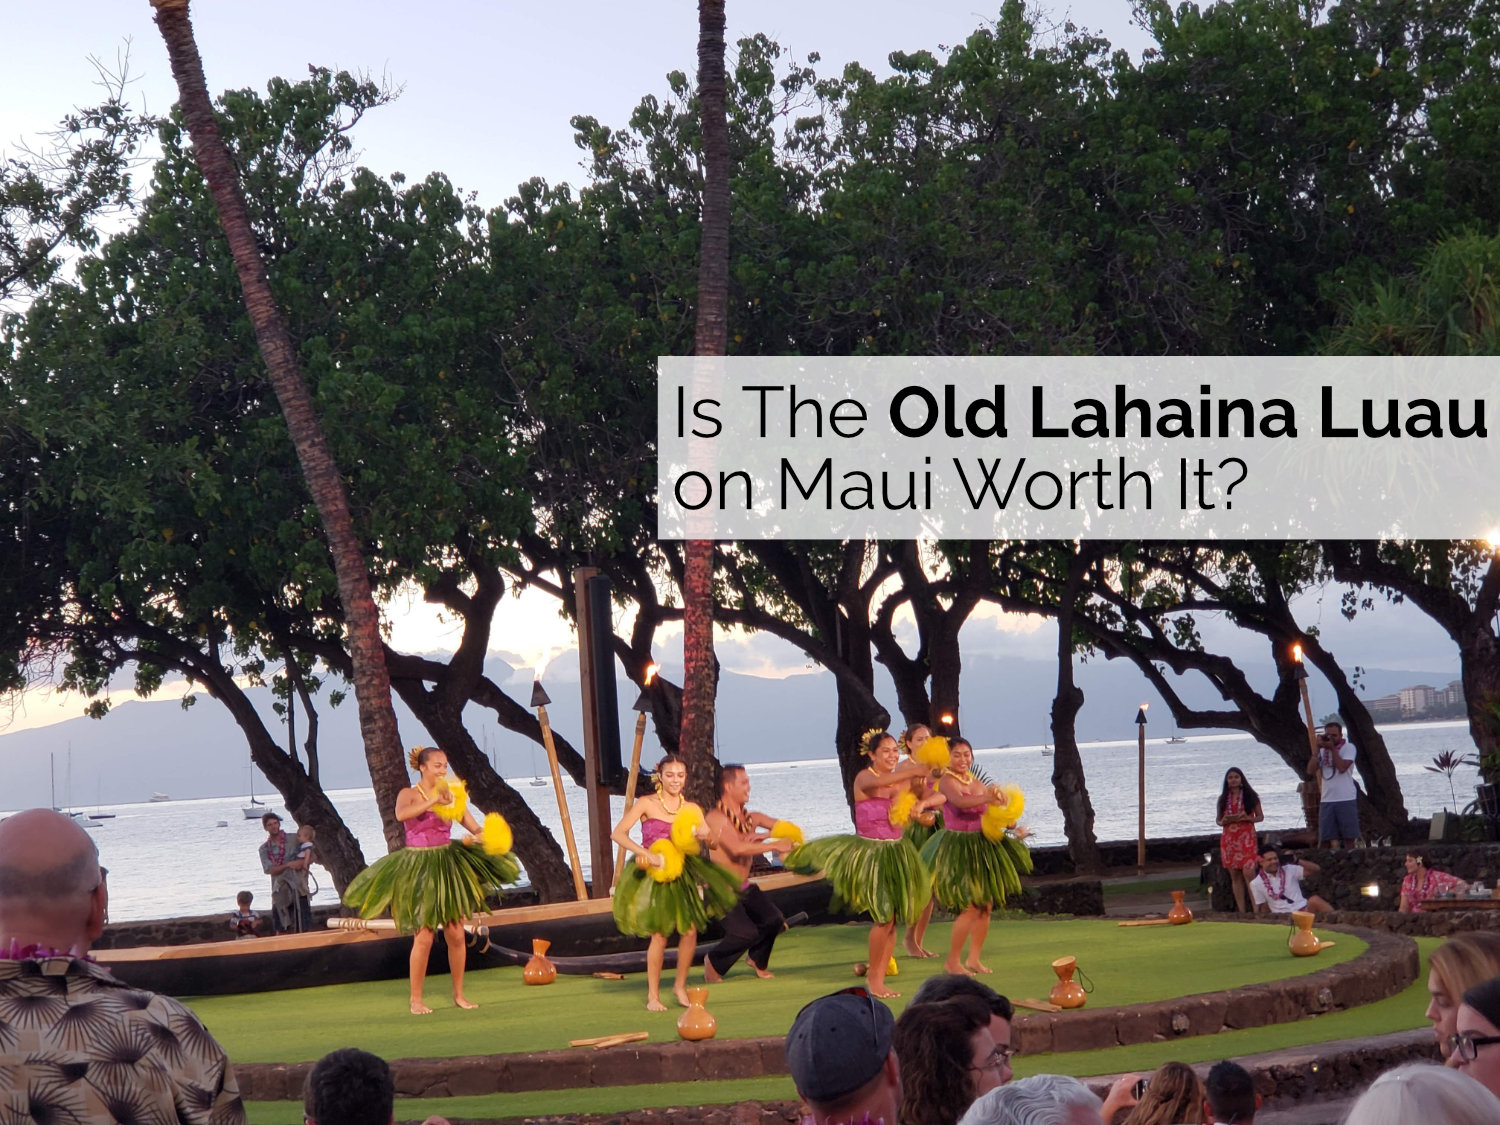 Is The Old Lahaina Luau on Maui Worth It?